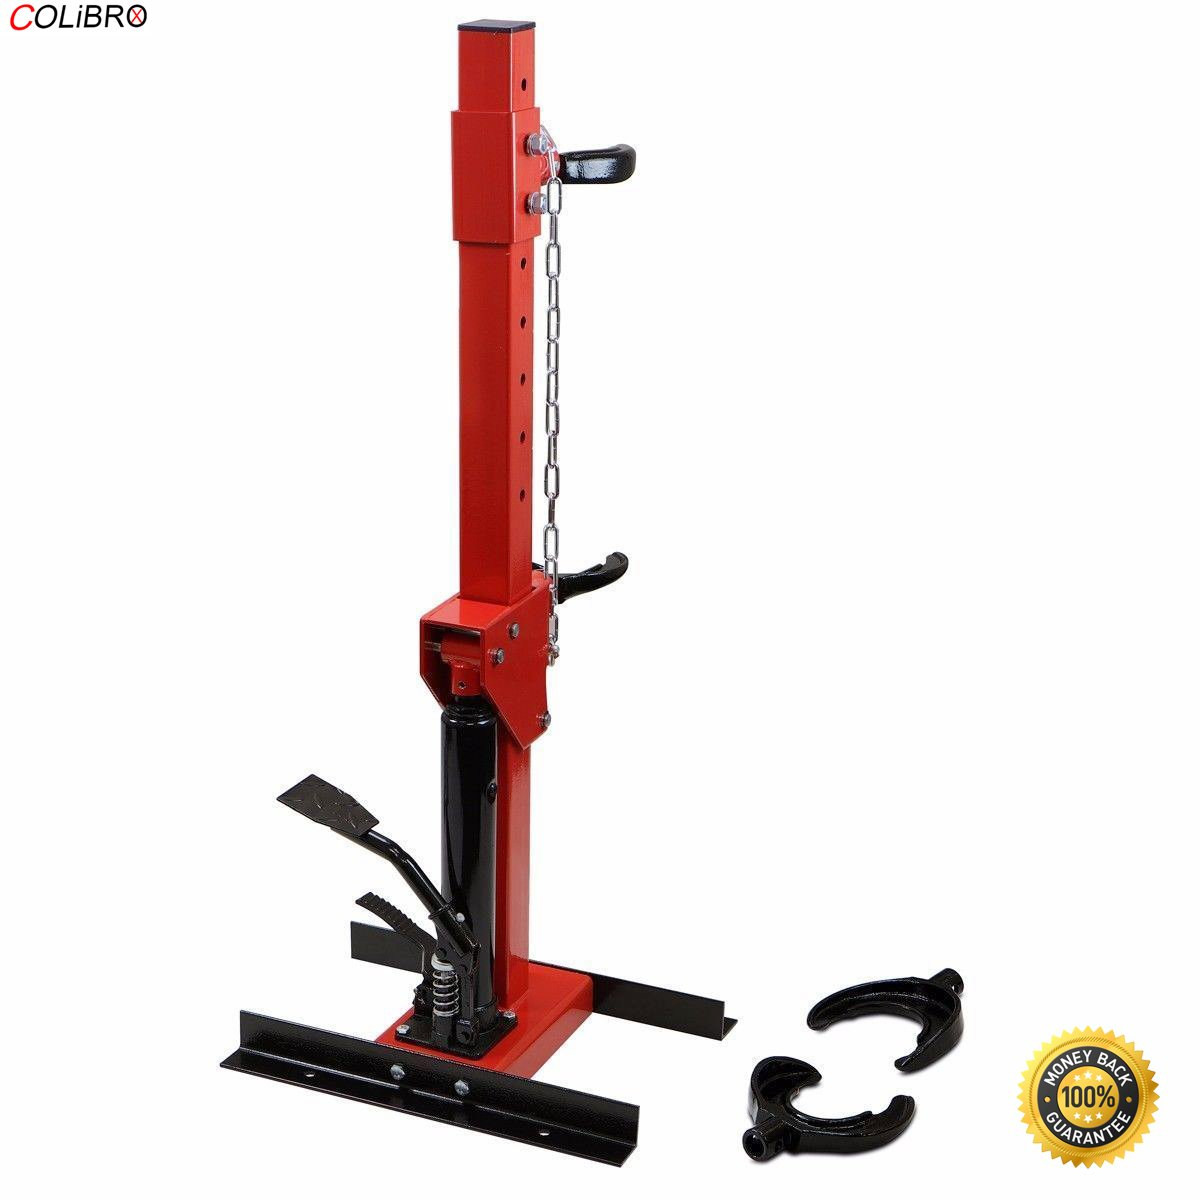 COLIBROX--HEAVY DUTY 5500 LBS Auto Strut Coil Spring Compressor Air Hydraulic Cars Truck. Premium Quality, Solid Steel Construction. Perfect for Commercial Use, Garages, Shops etc.